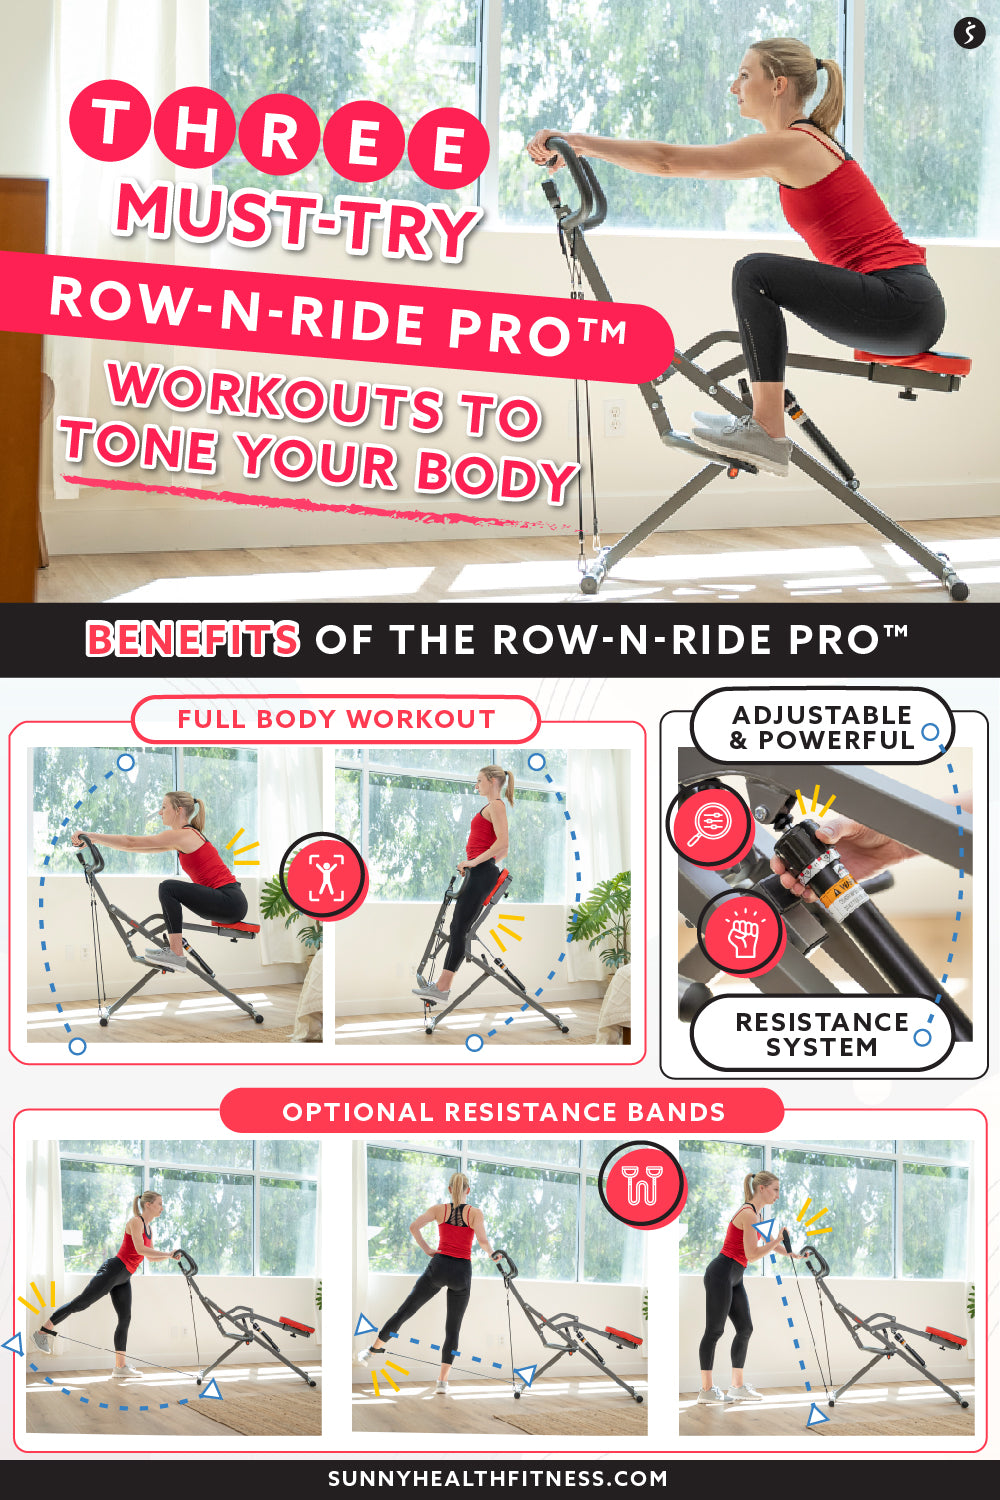 Tone Your Body in Three Must Try Row-n-Ride Pro Workouts